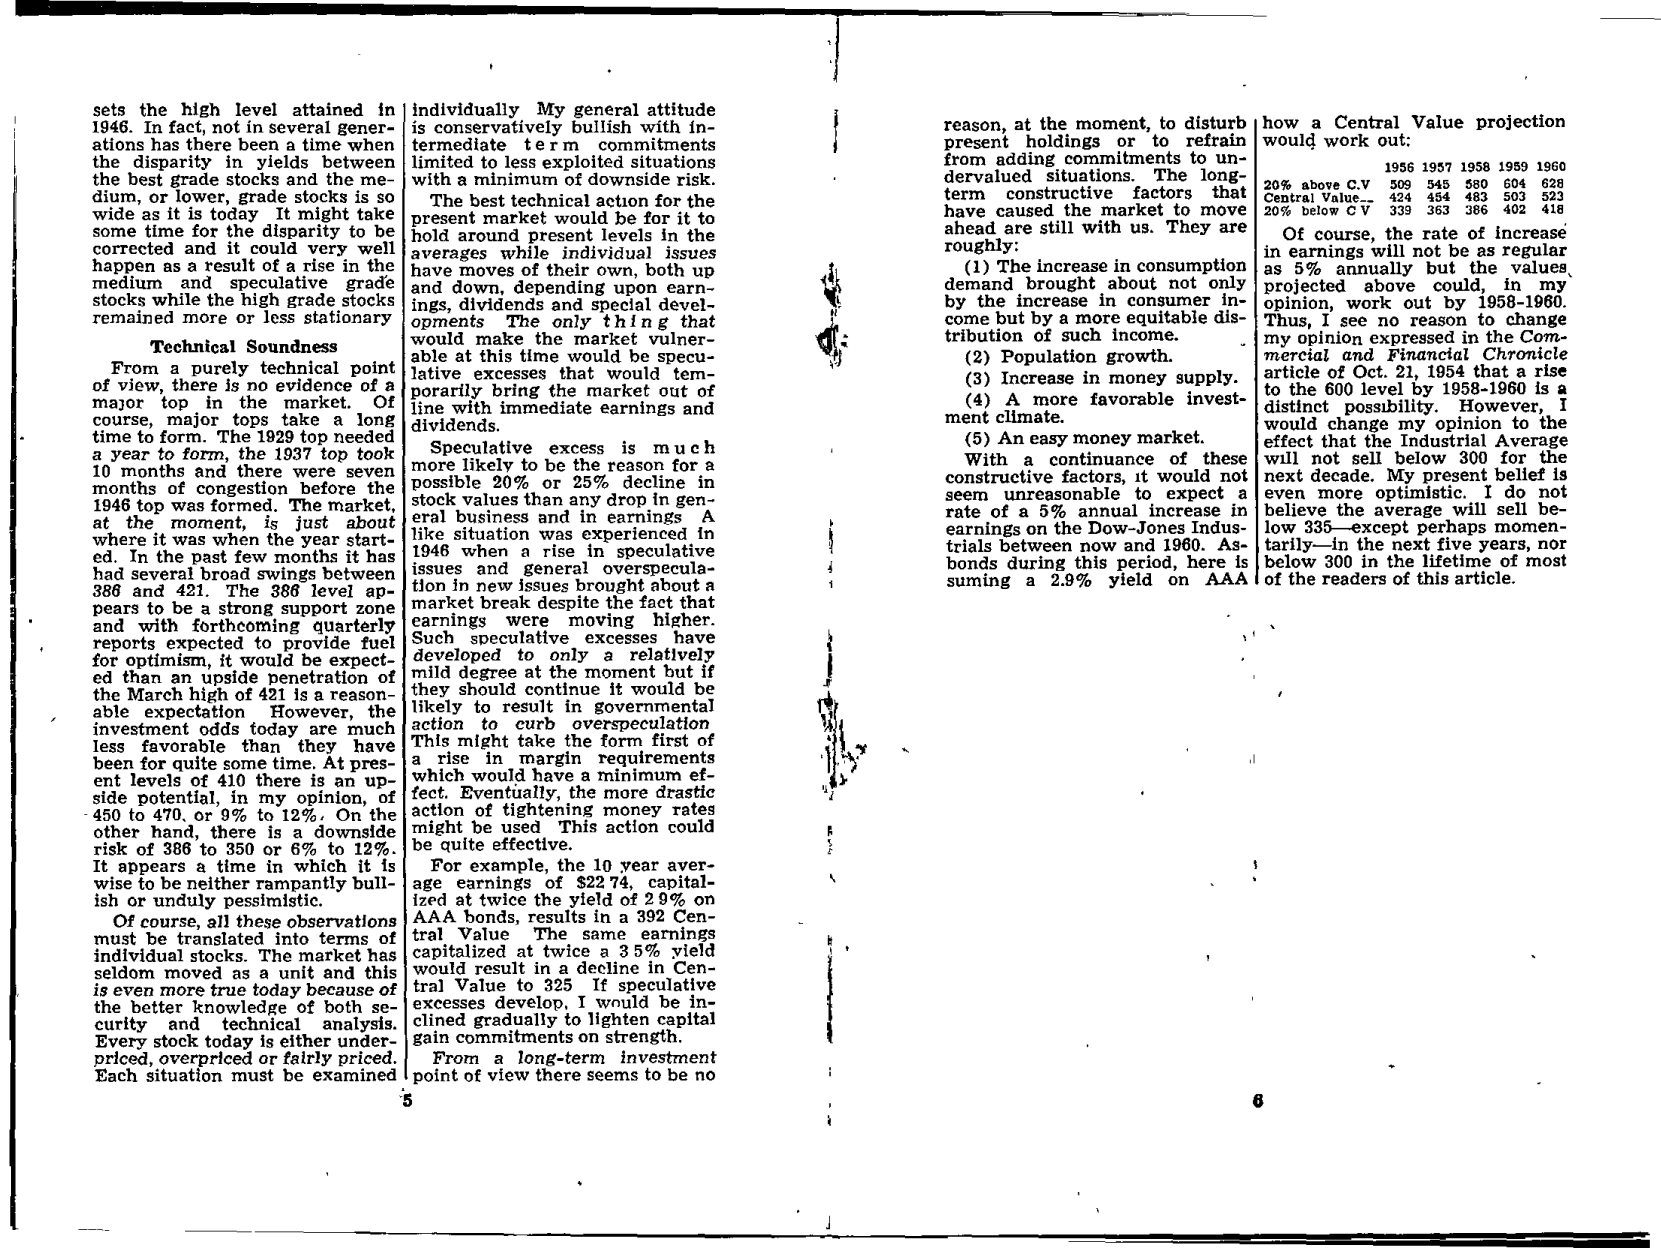 Tabell's Market Letter - April 15, 1955 page 3